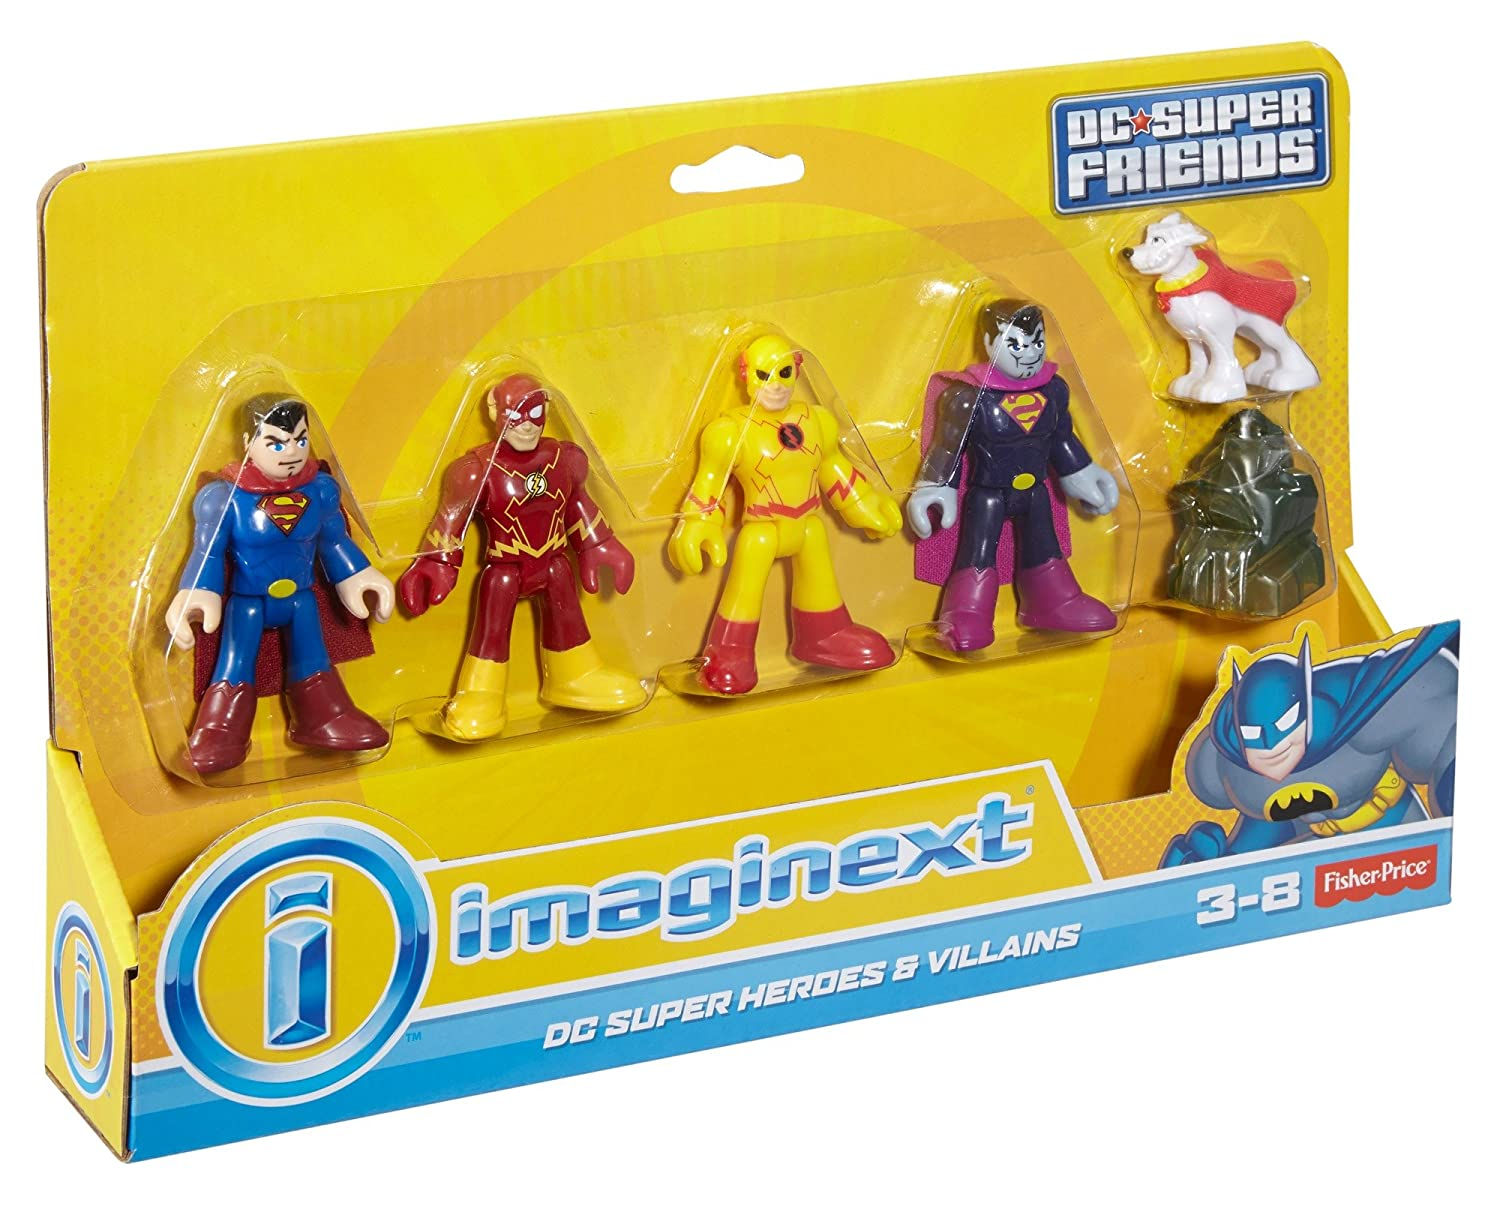 Import CMX23 Fisher-Price DC Super Friends Imaginext Heroes /& Villains Action Figure Fisher Price